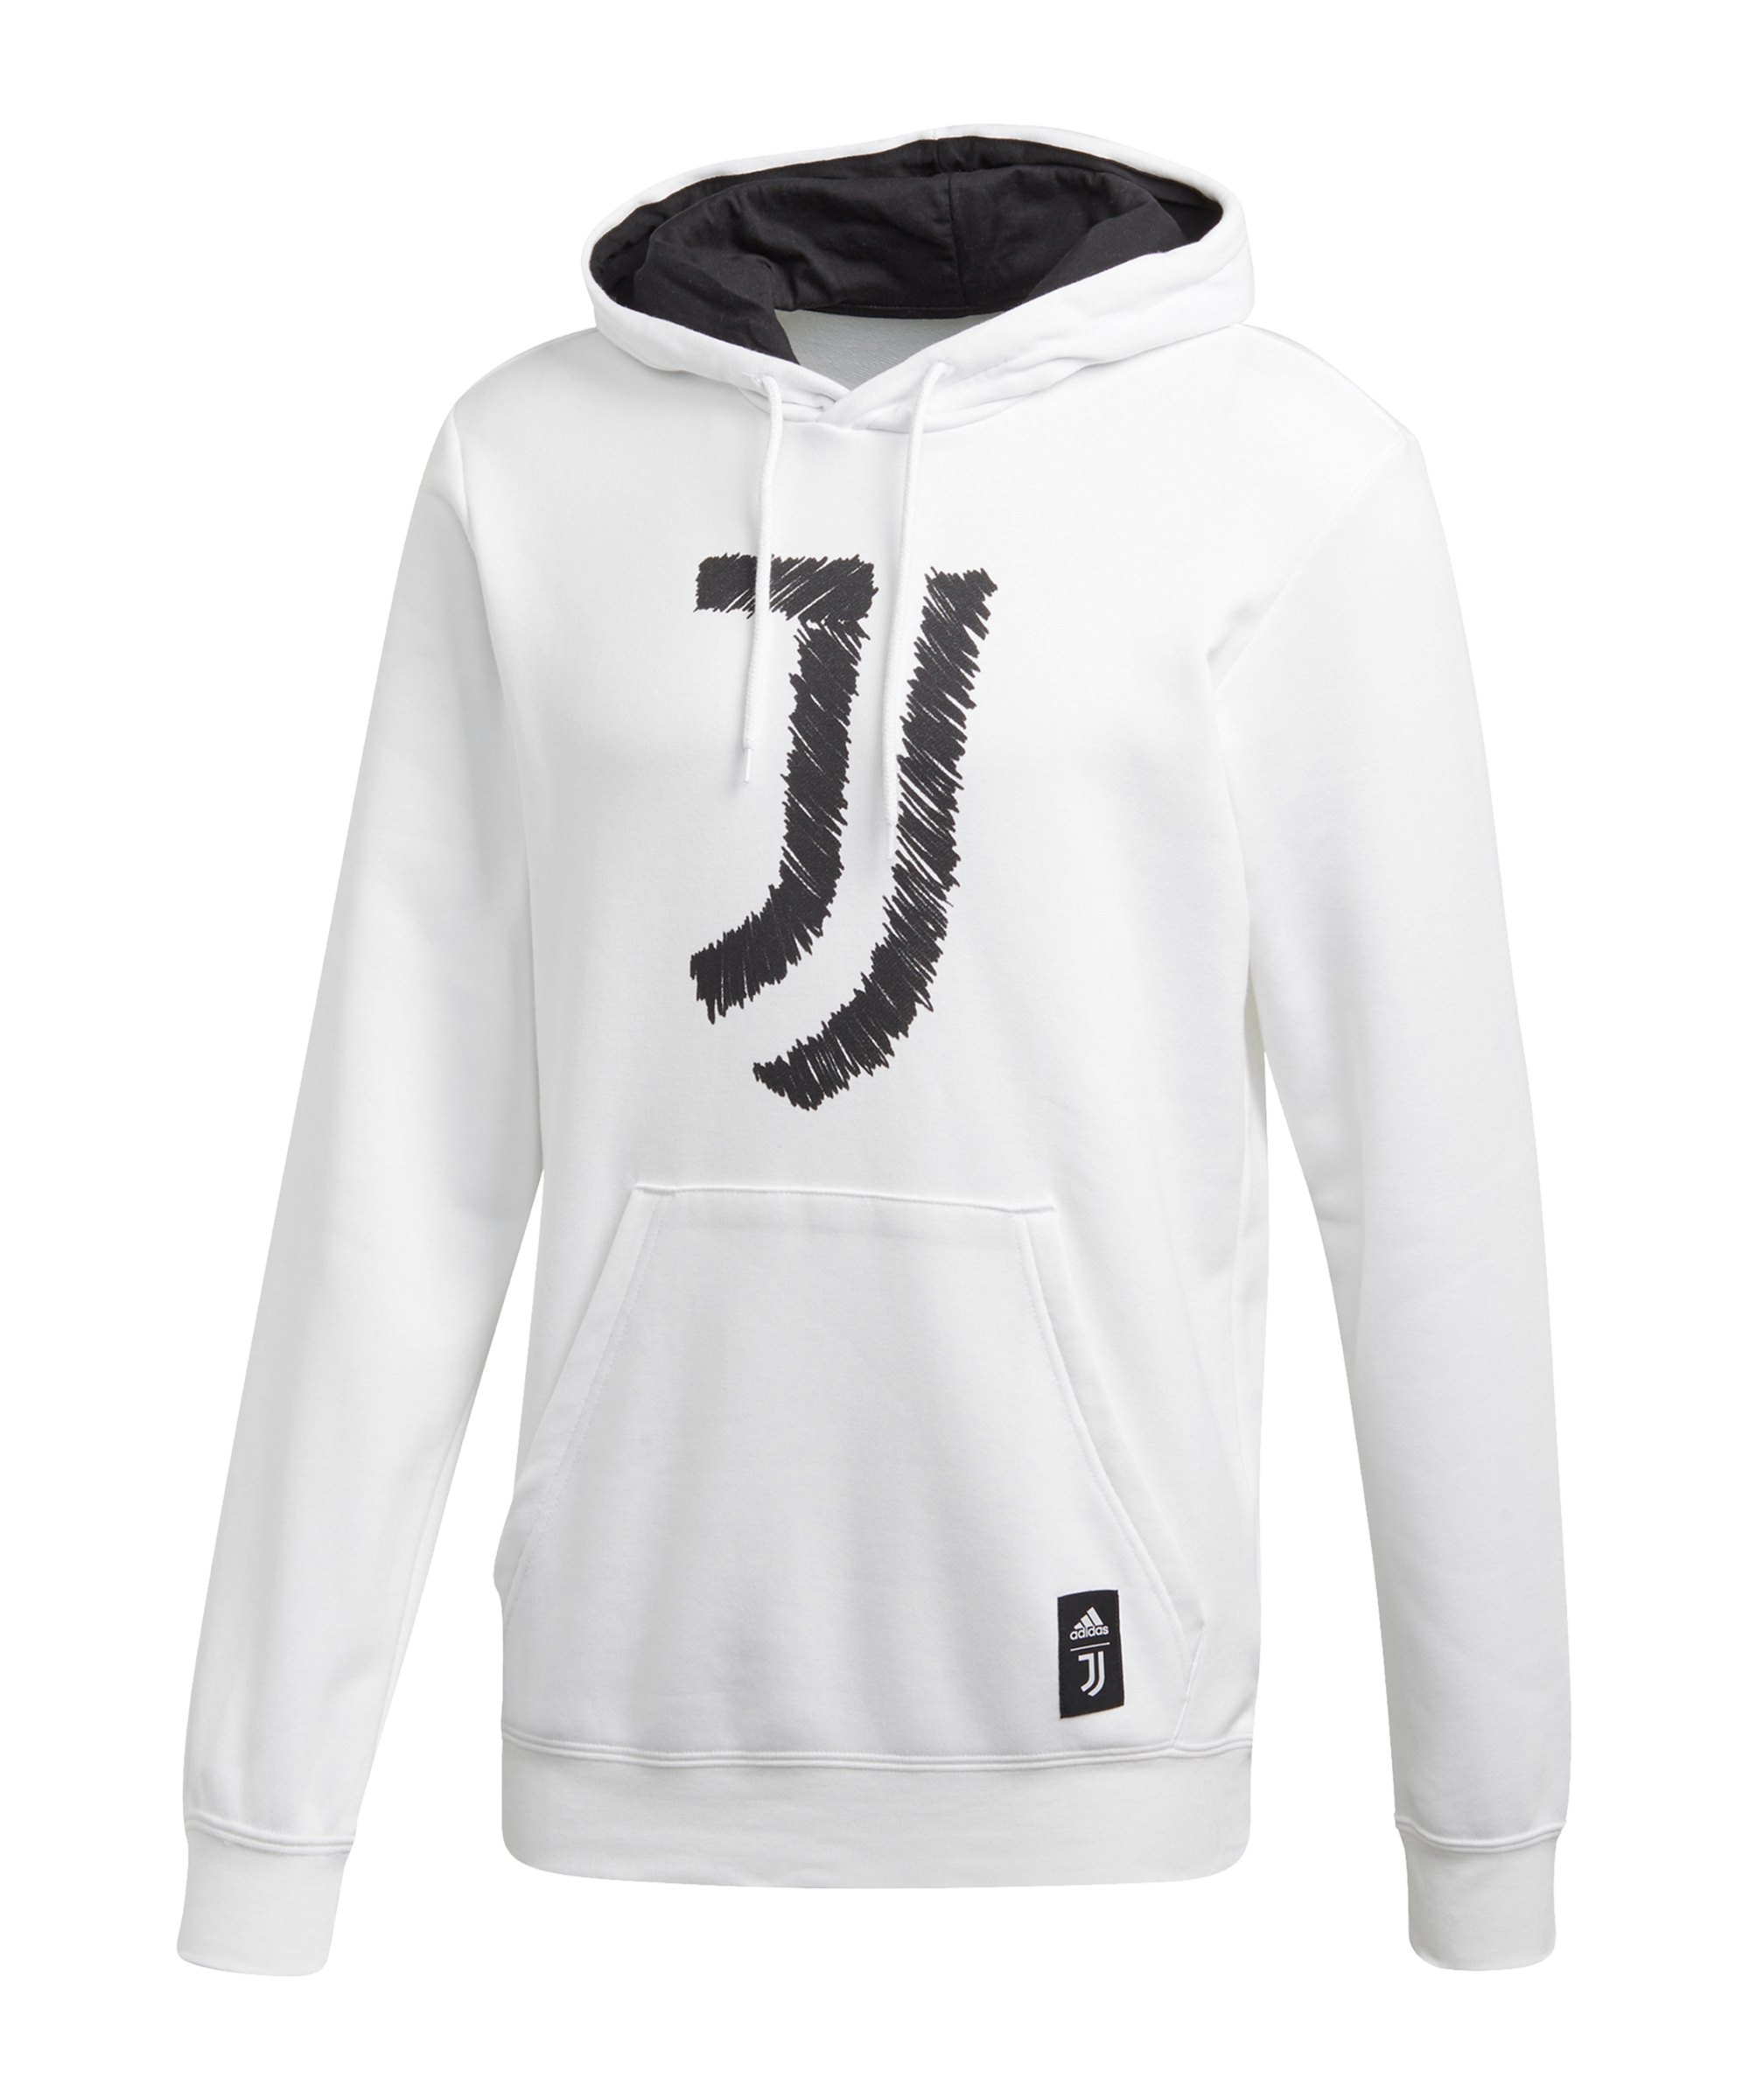 adidas Juventus Turin DNA Graphic Hoody Weiss - weiss